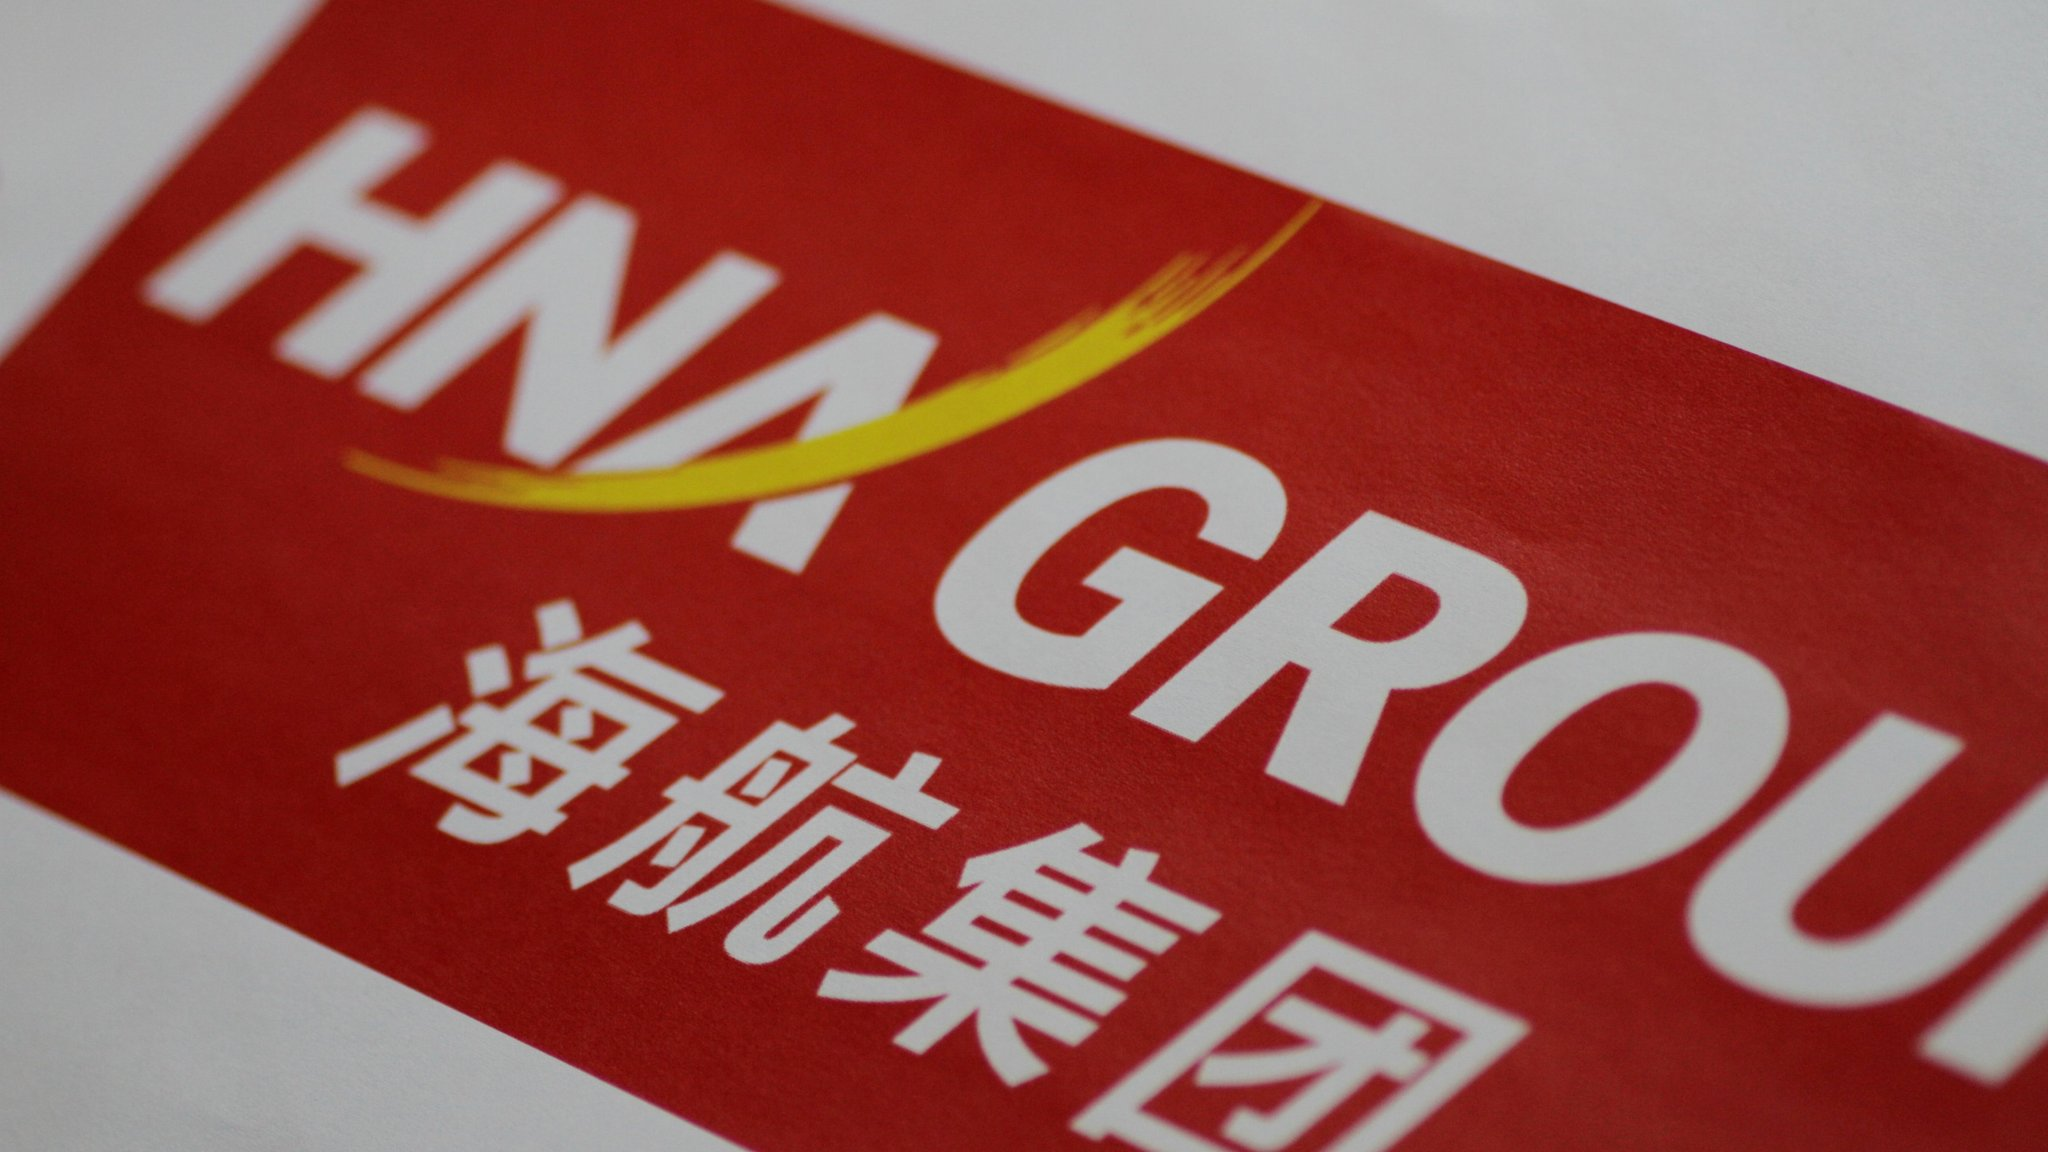 HNA to seek Swiss public listing for Gategroup